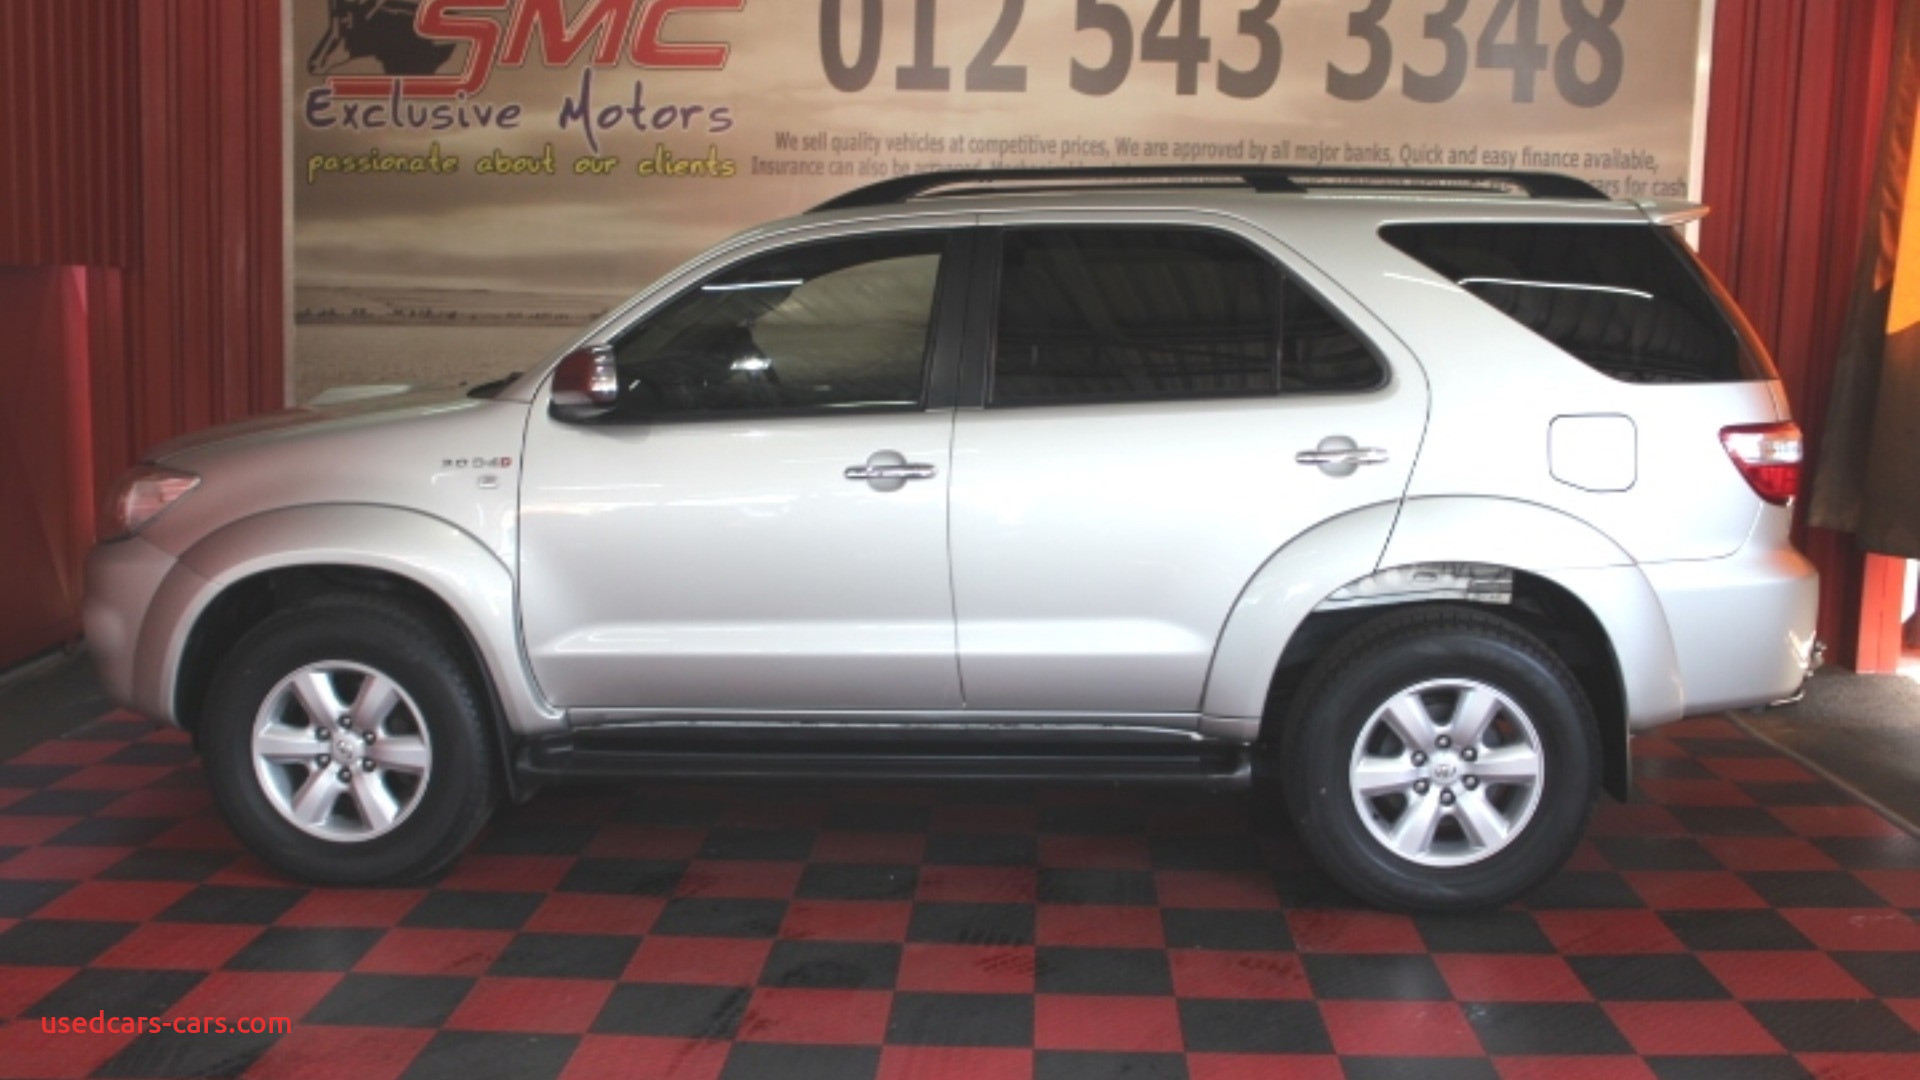 Used Cars for Sale 2010 Best Of toyota fortuner fortuner 3 0d 4d Automatic for Sale In